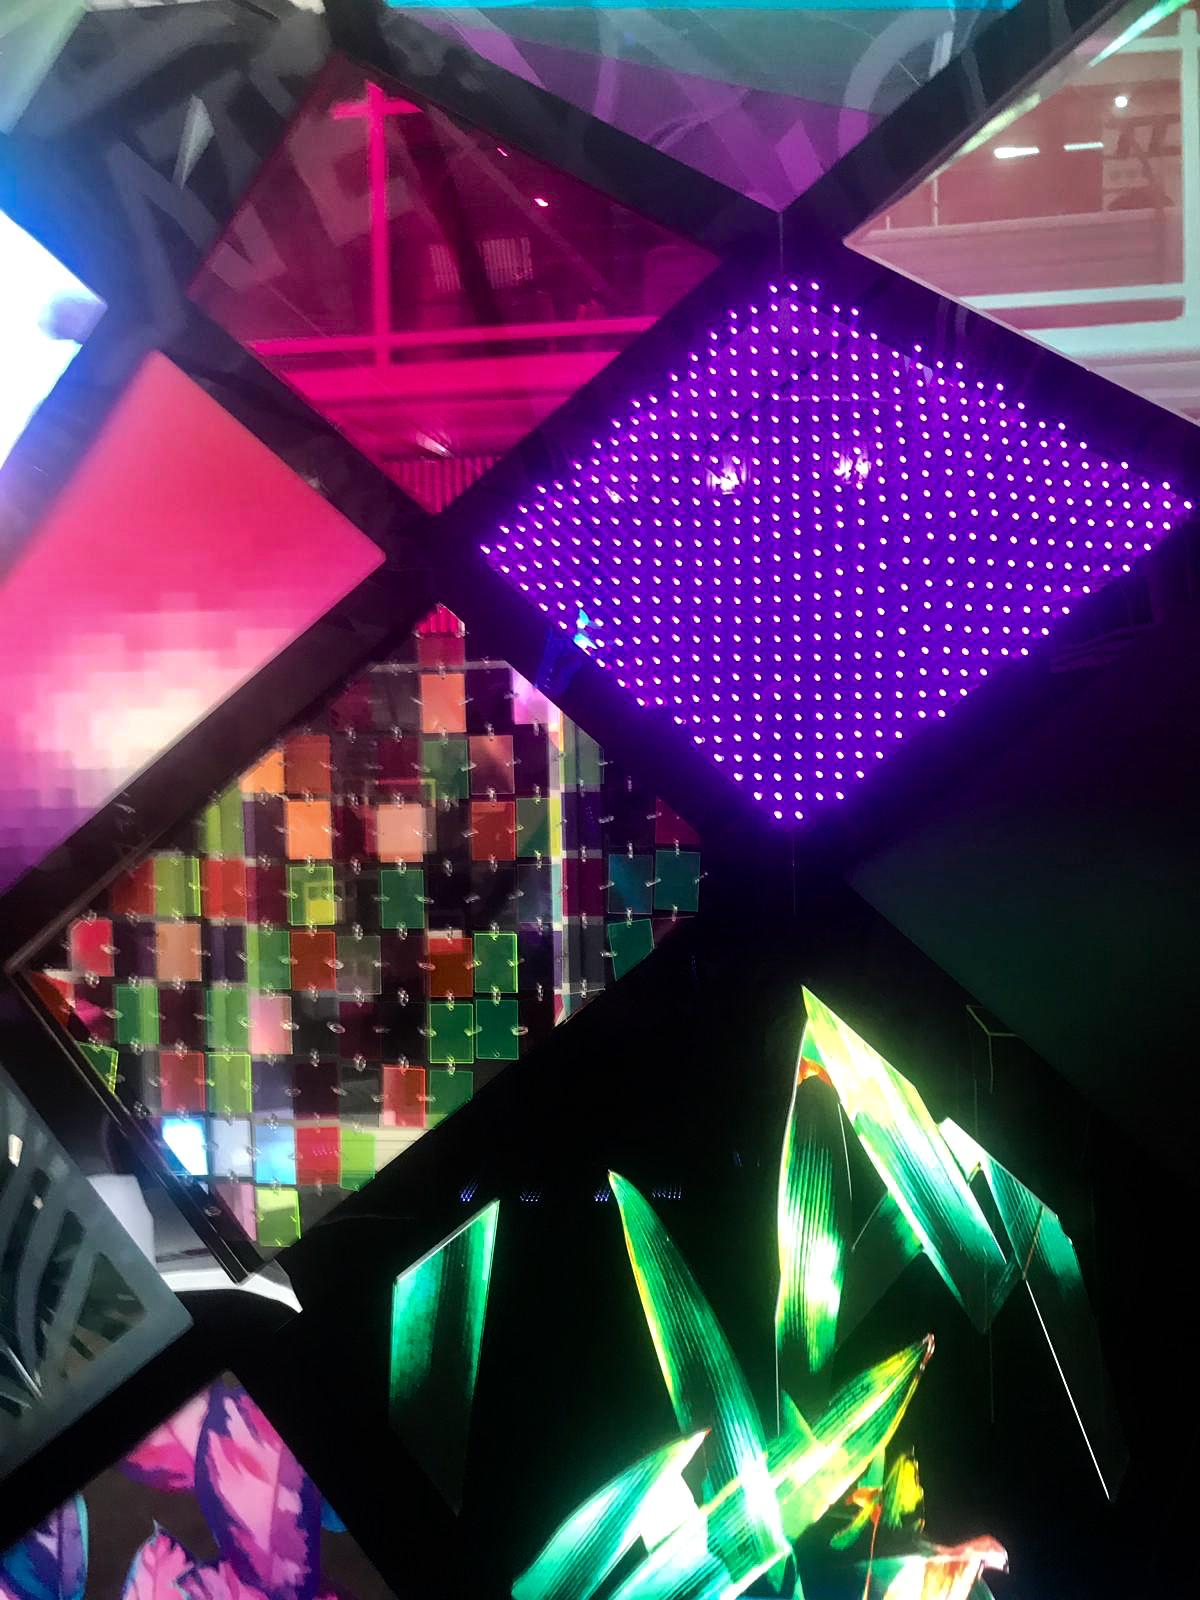 Dichroic Dreams   We loved Floreeda's colourful dreamlike stand which shows how playful and versatile acrylic can be, with infinity screens and projections and reflective materials